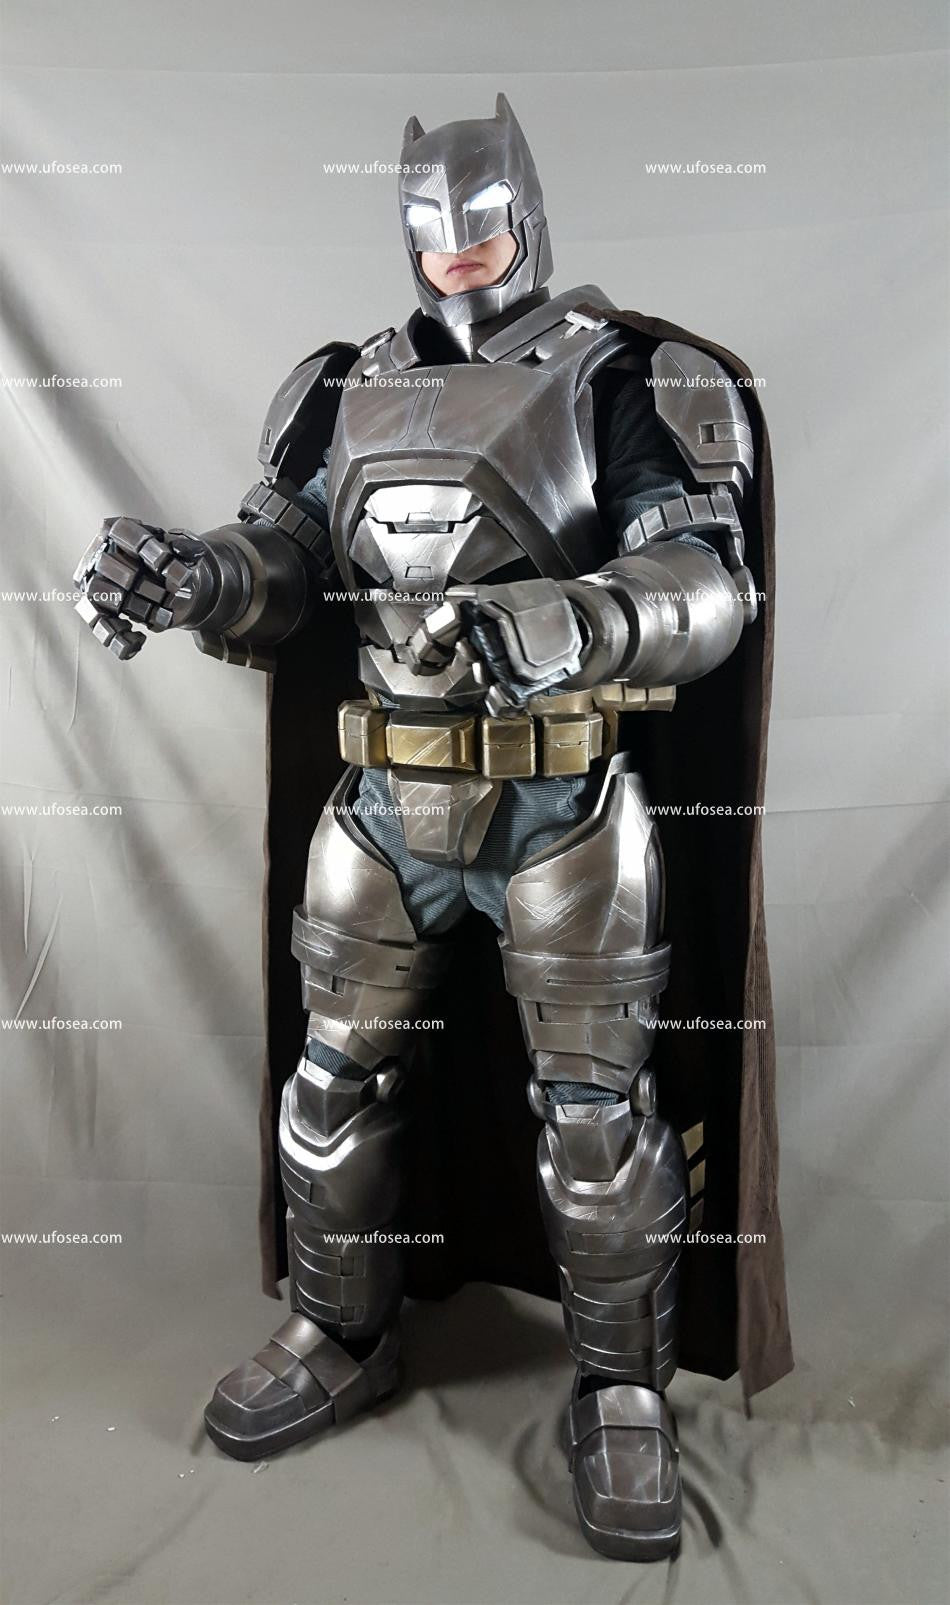 Batman v Superman Dawn of Justice Armor Batman Armor Reloaded Armor